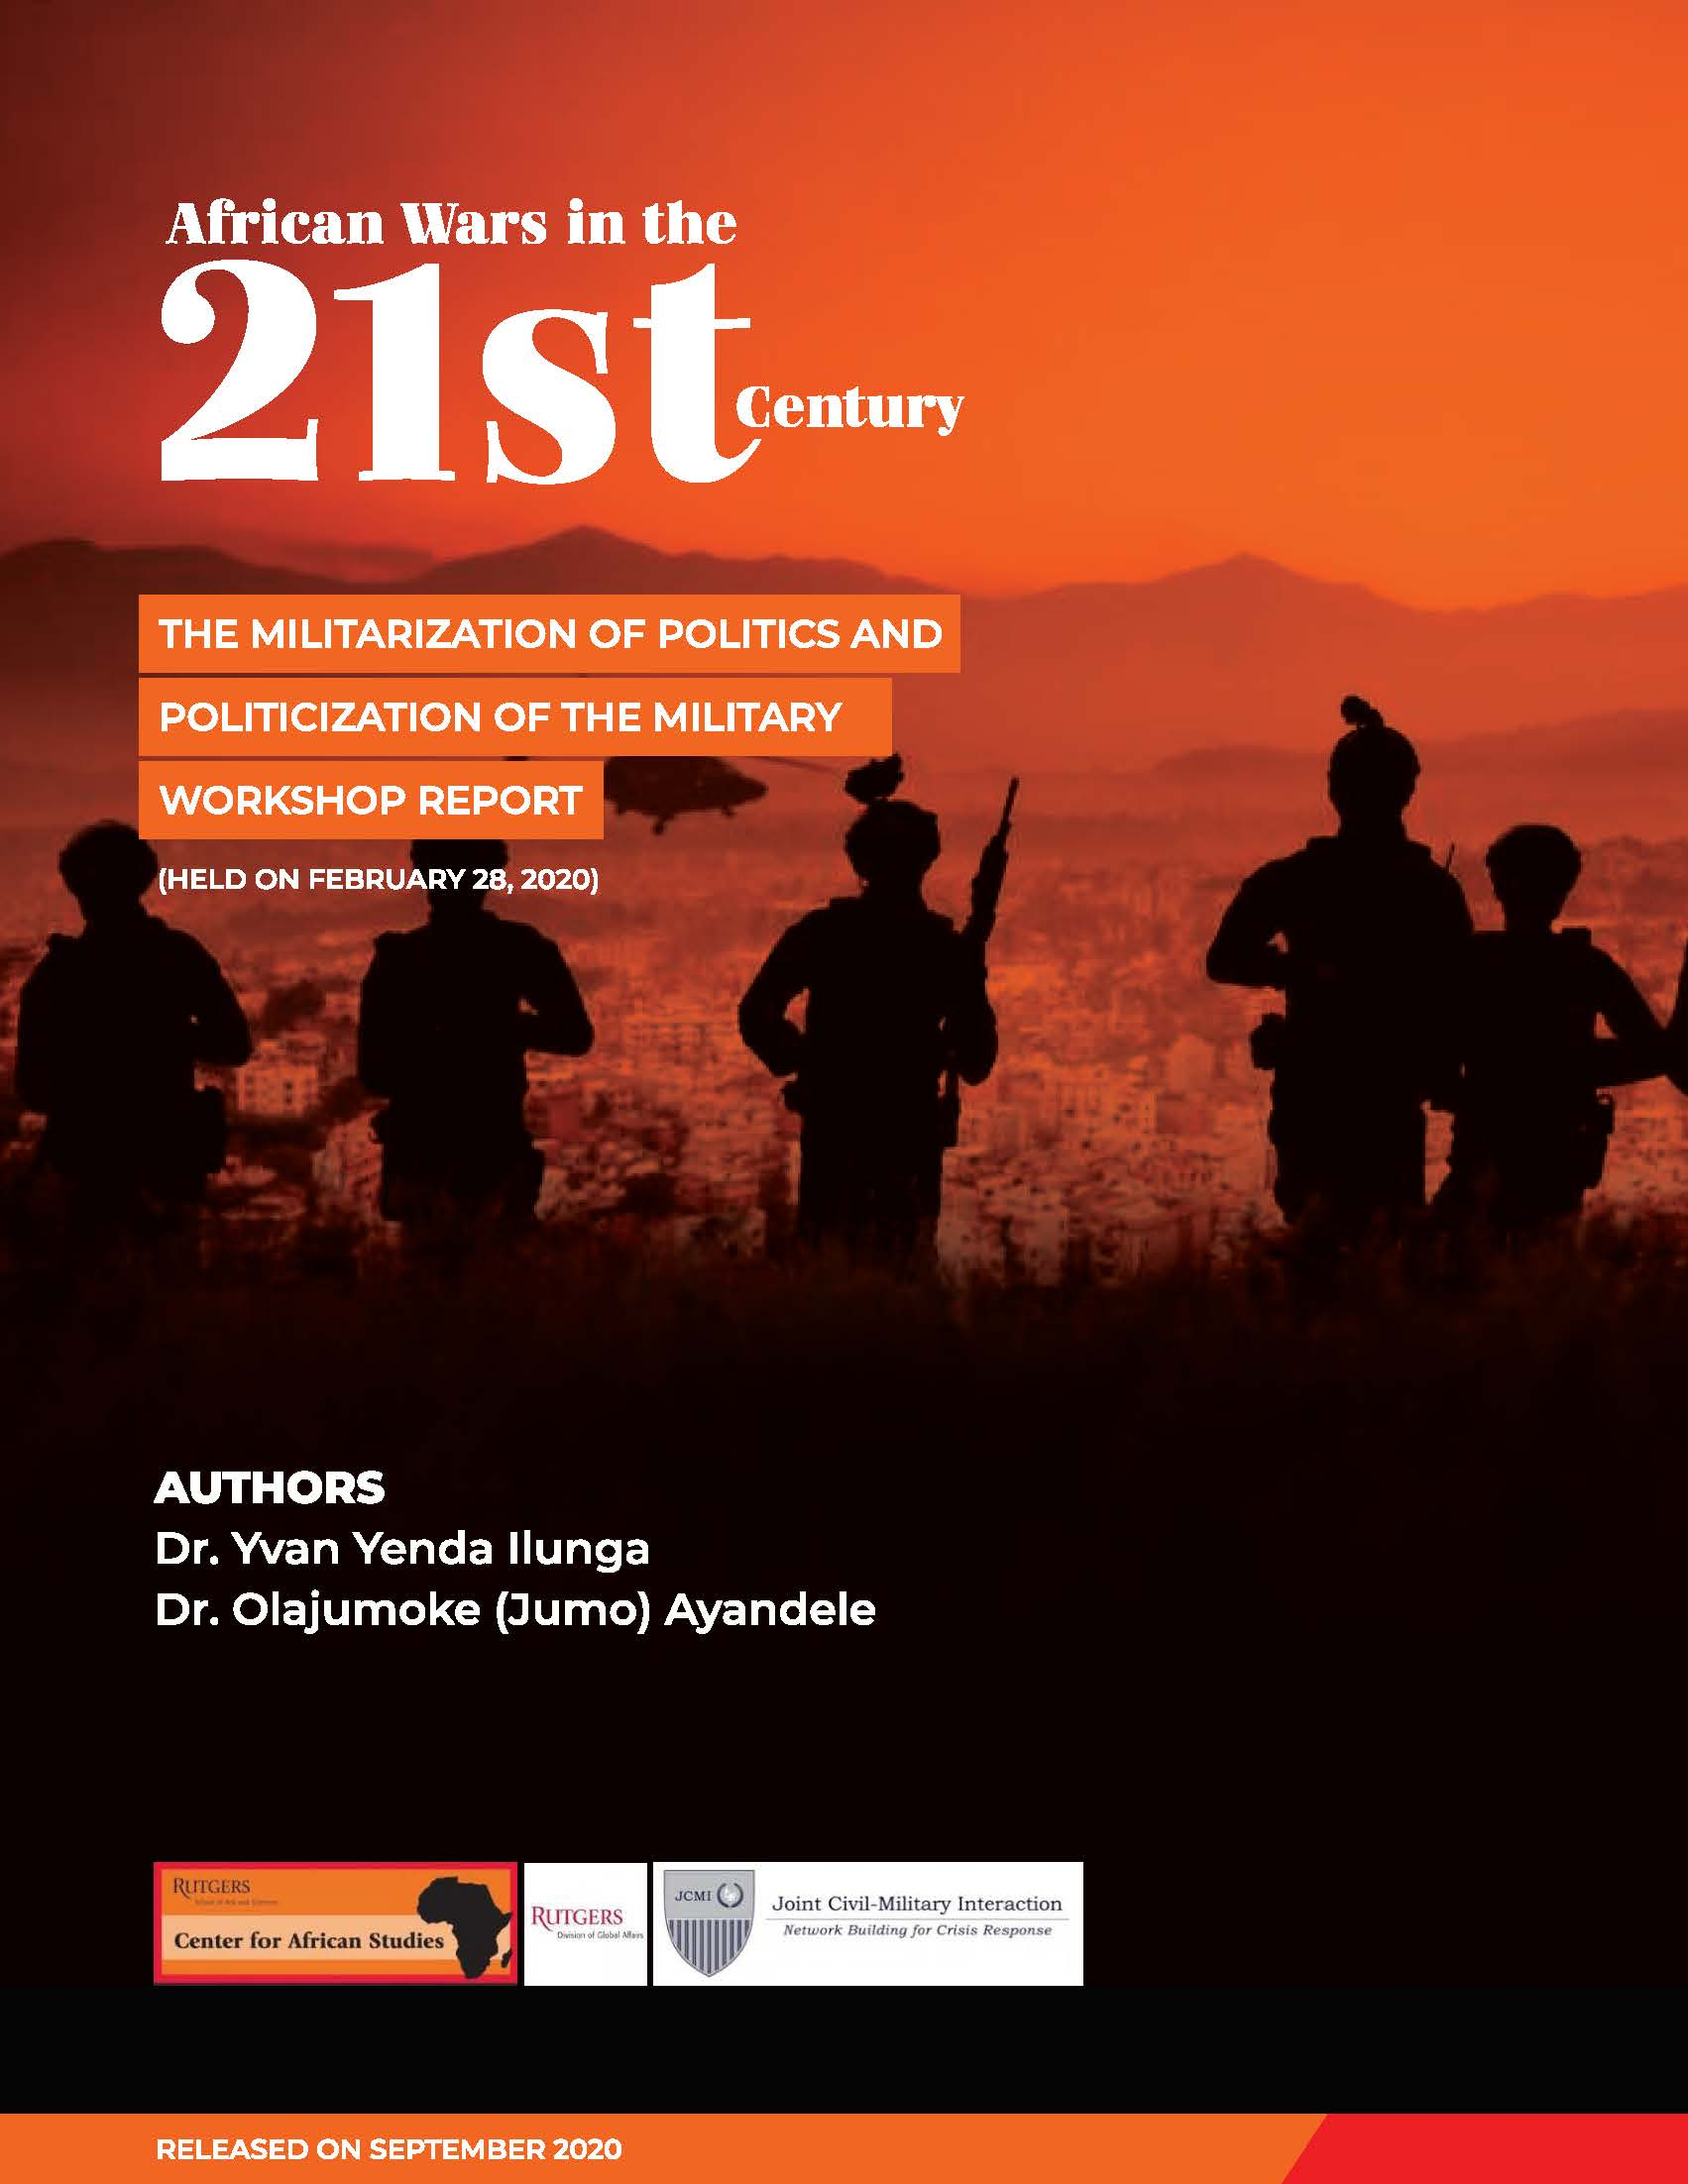 African Wars in the 21st Century: Dr. Yvan Yenda Ilunga and Dr. Olajumoke (Jumo) Ayandele